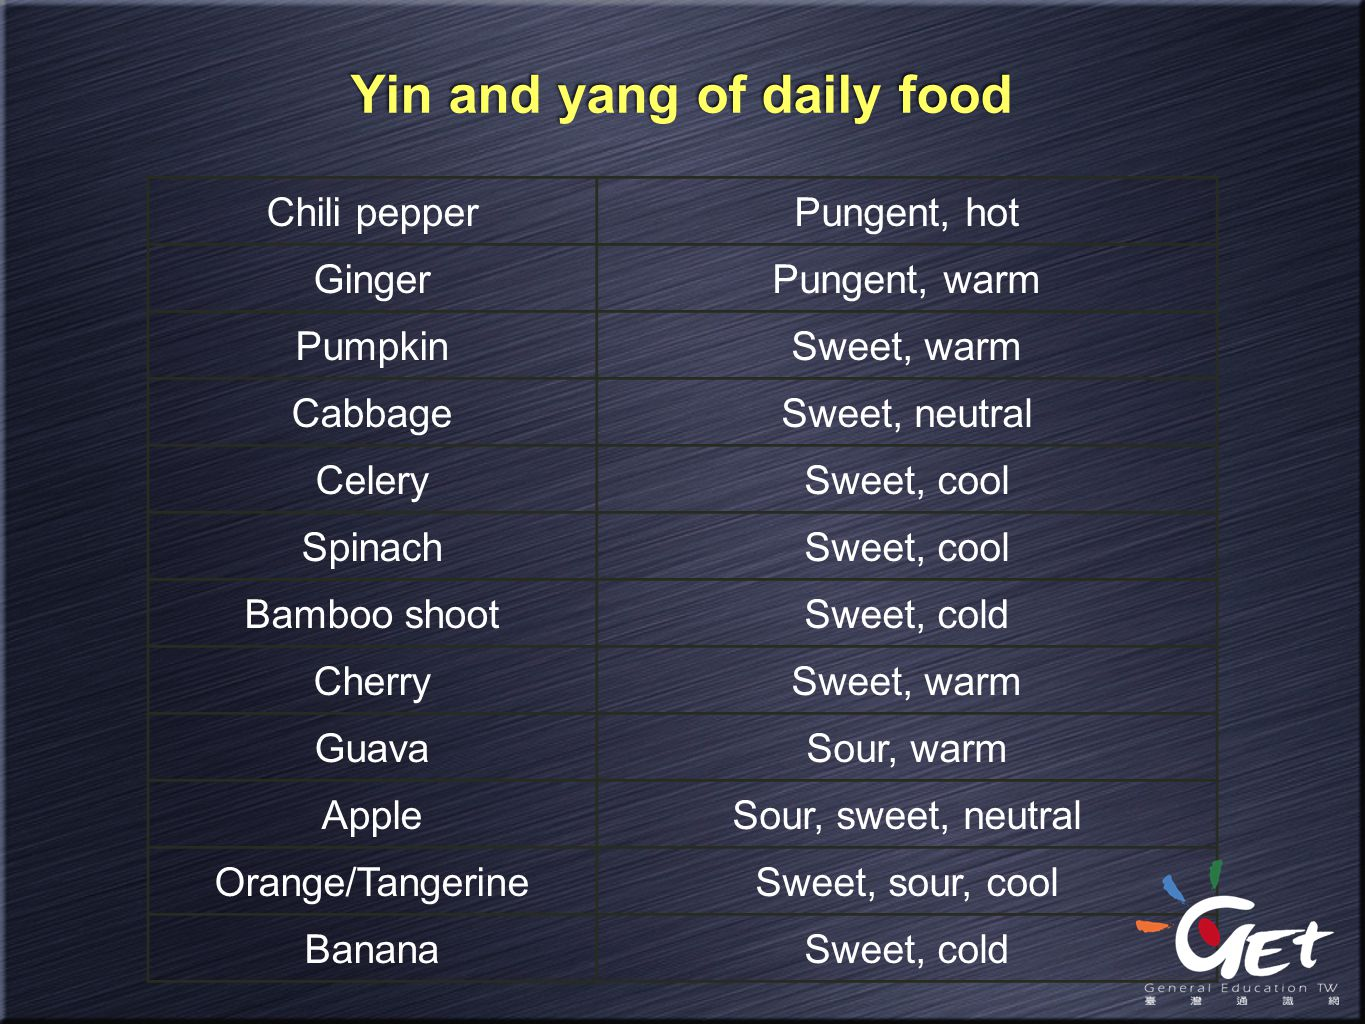 Yin and yang of daily food